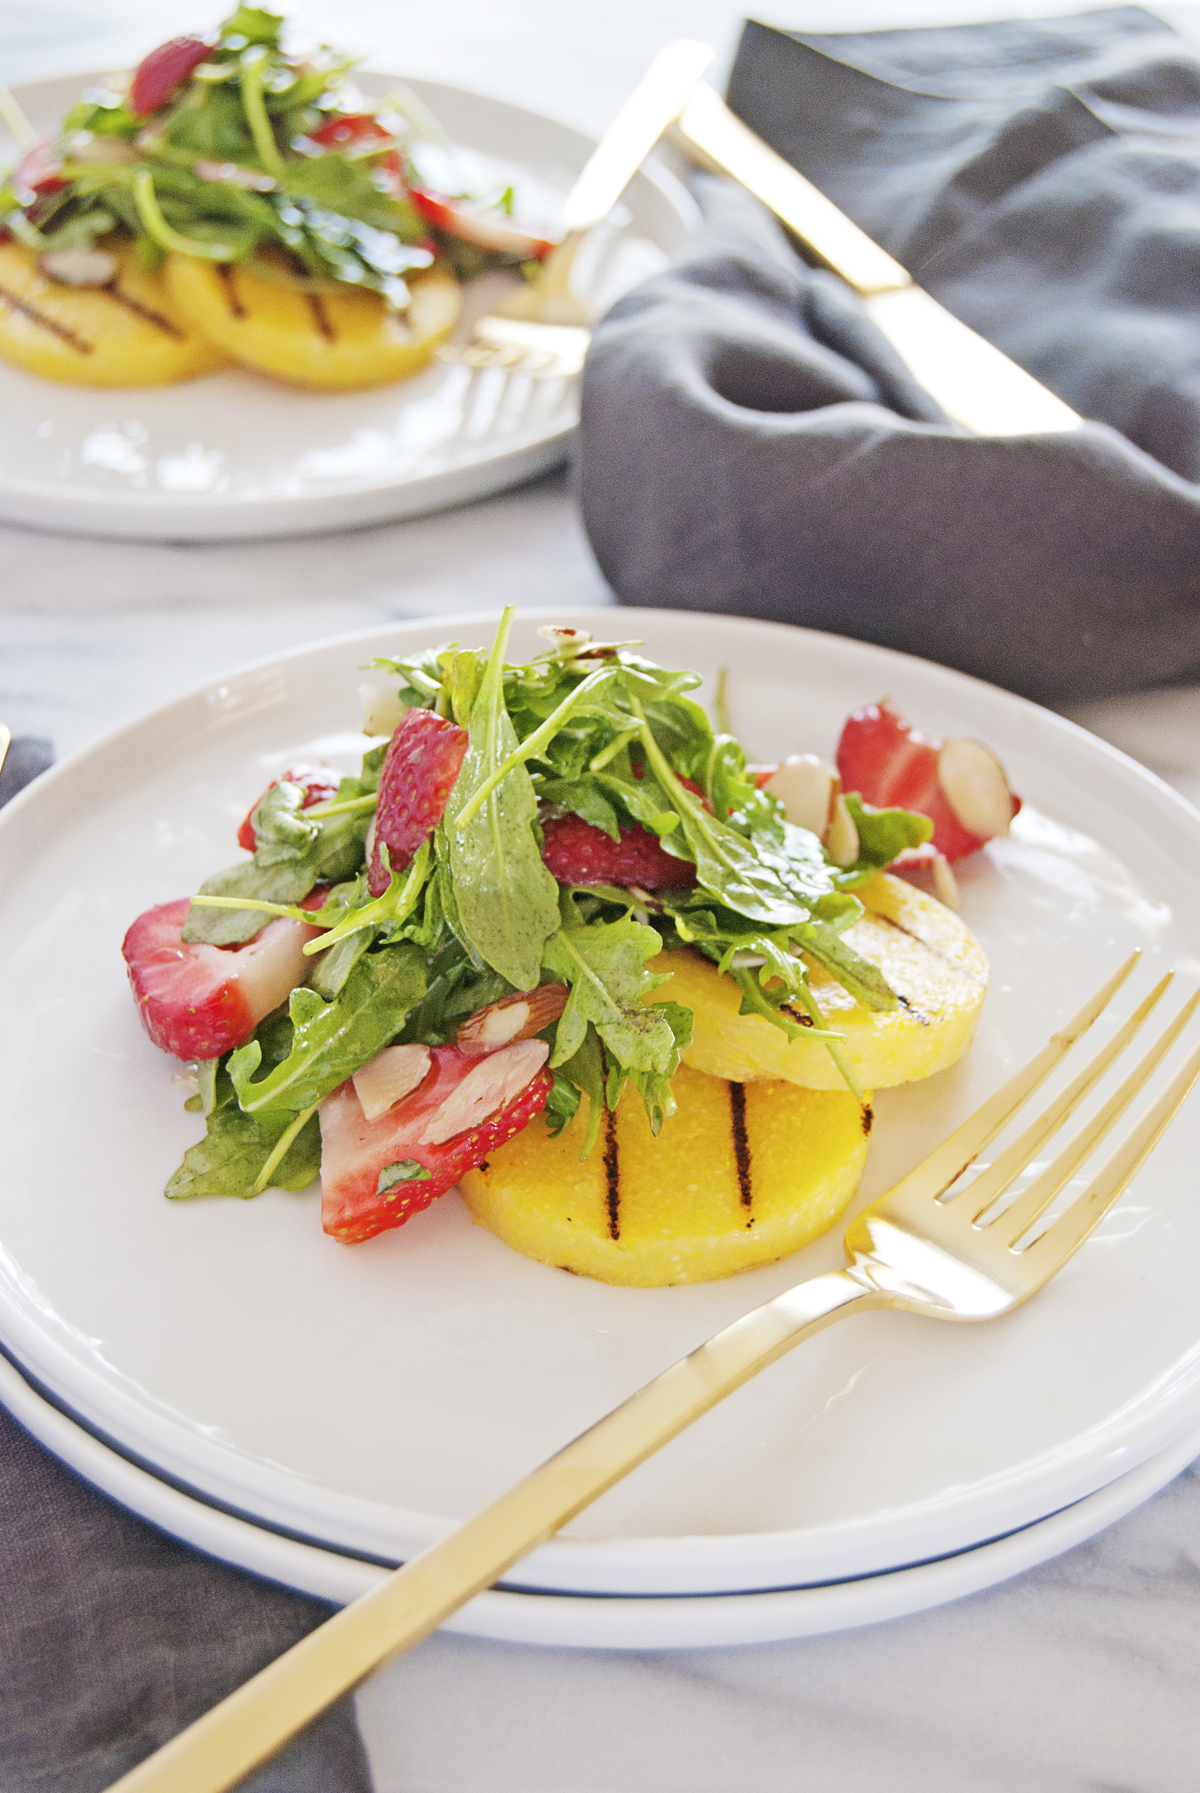 This strawberry arugula salad is so refreshing and features a bright citrus vinaigrette paired with beautifully grilled polenta croutons!